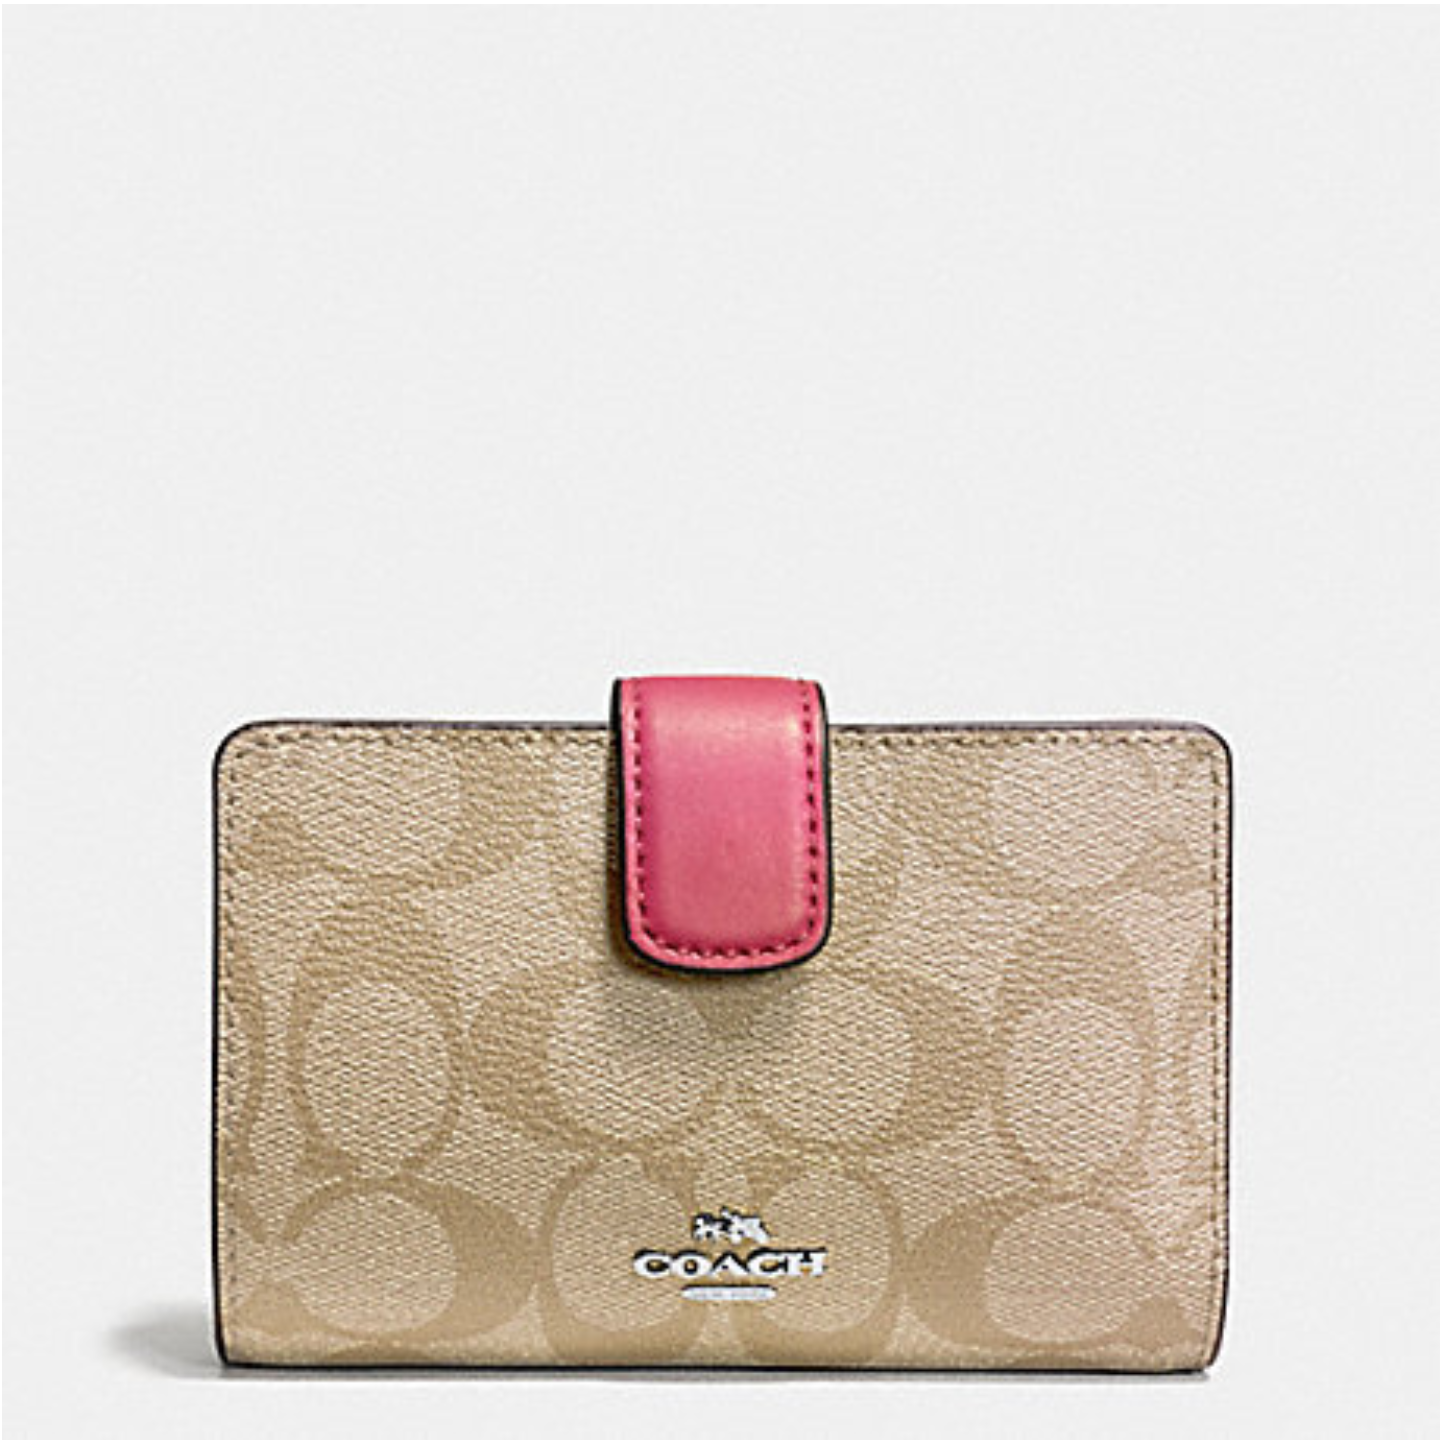 Coach Ladies Wallet MEDIUM CORNER ZIP CROSSGRAIN LEATHER COACH F53436